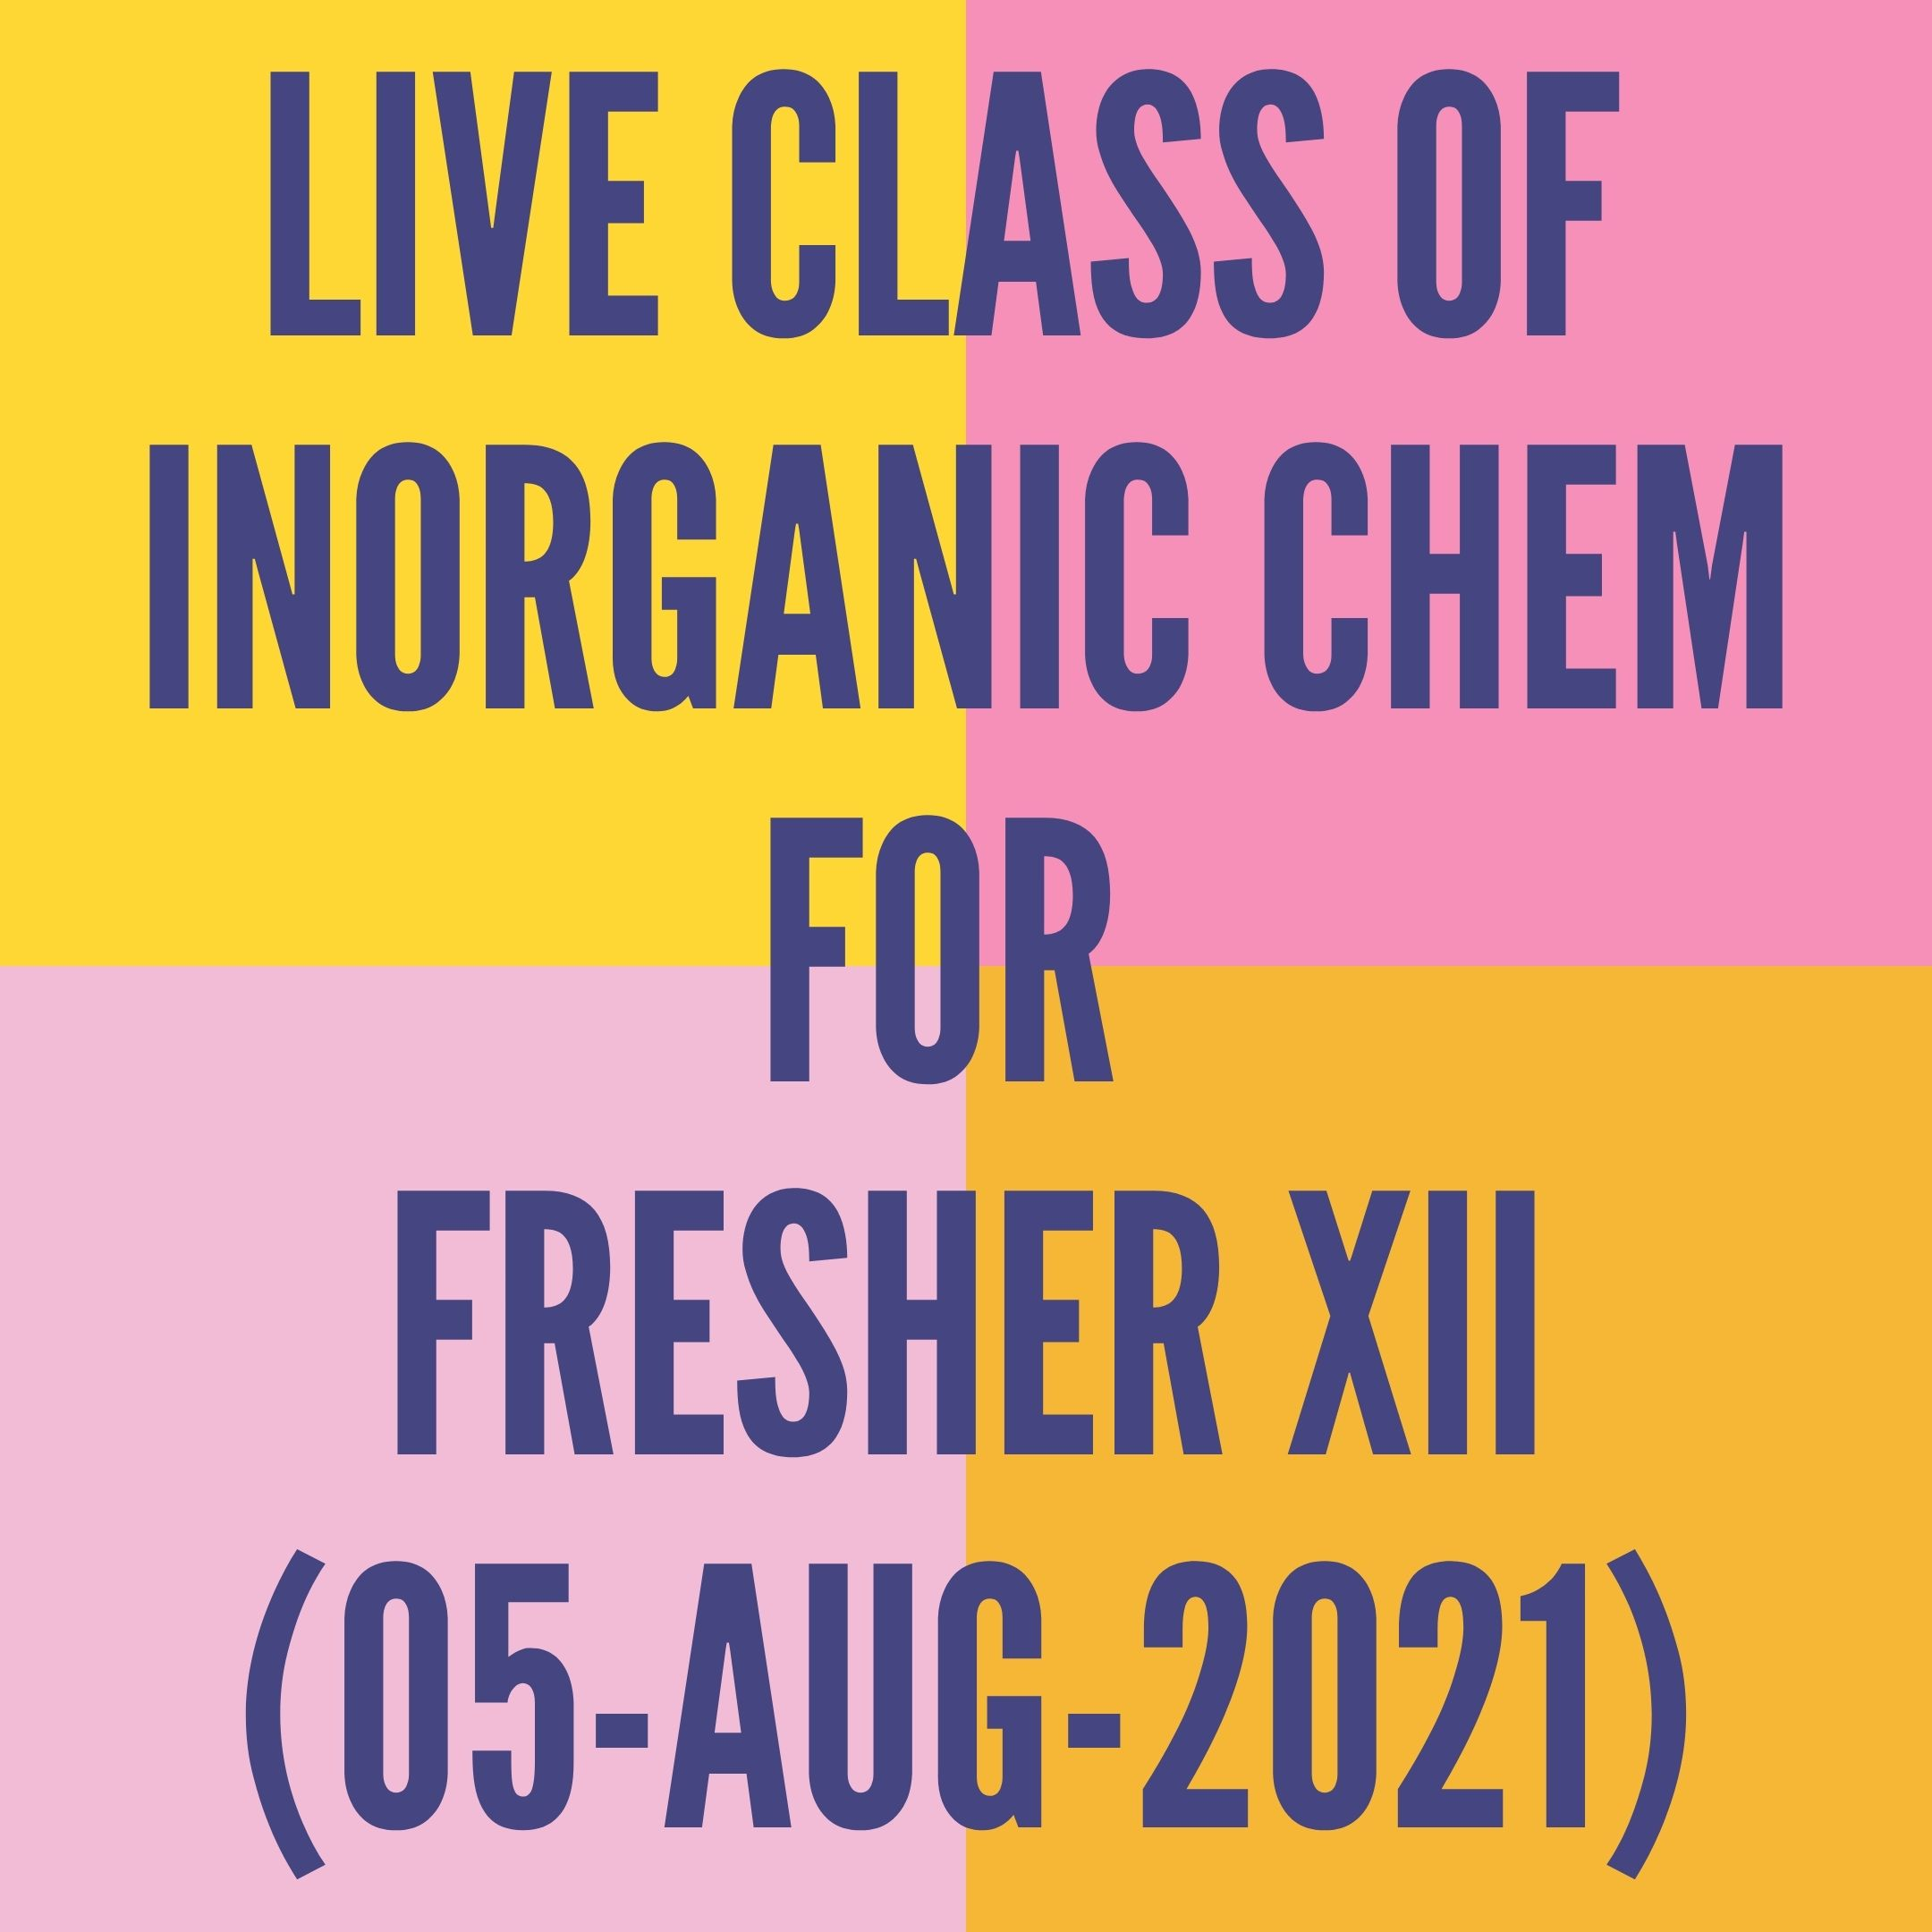 LIVE CLASS OF INORGANIC CHEMISTRY FOR FRESHER XII (05-AUG-2021) F- BLOCK